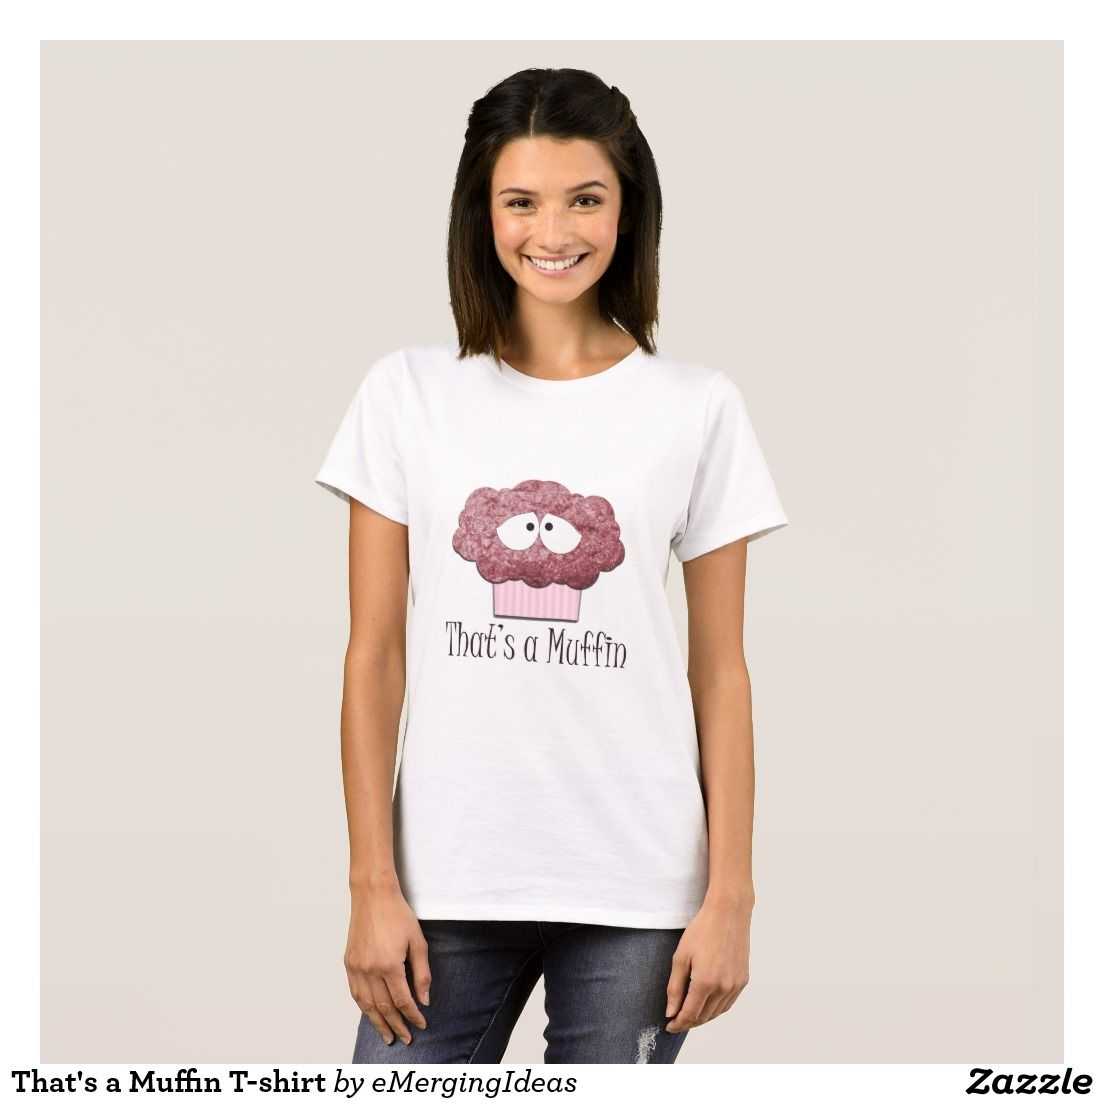 That's a Muffin T-shirt